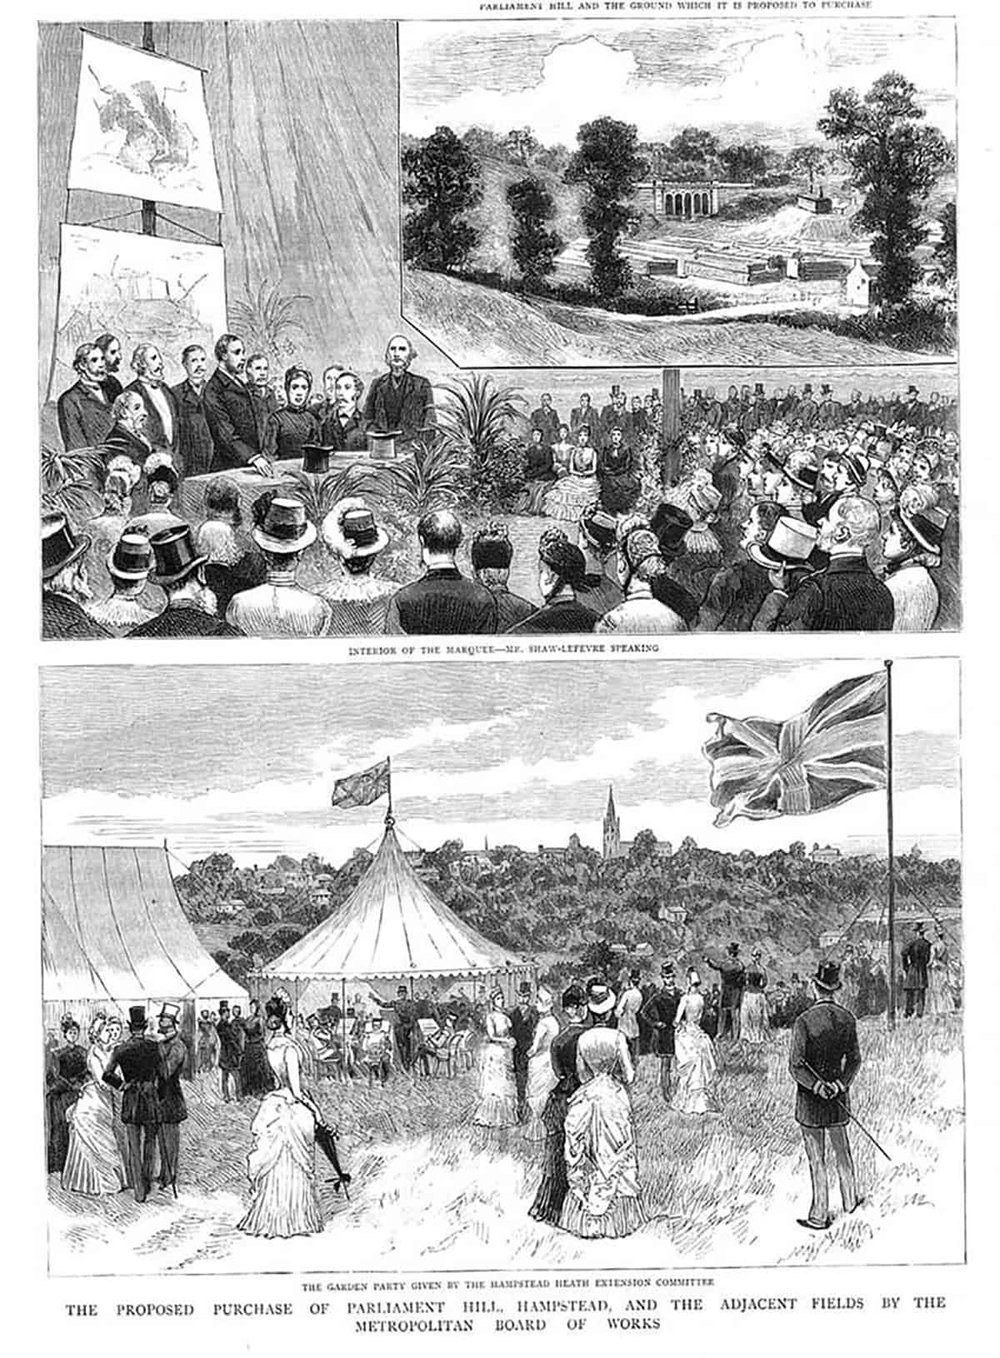 1885 HAMPSTEAD HEATH Parliament Hill and Adjacent Fields, 1885_1.JPG